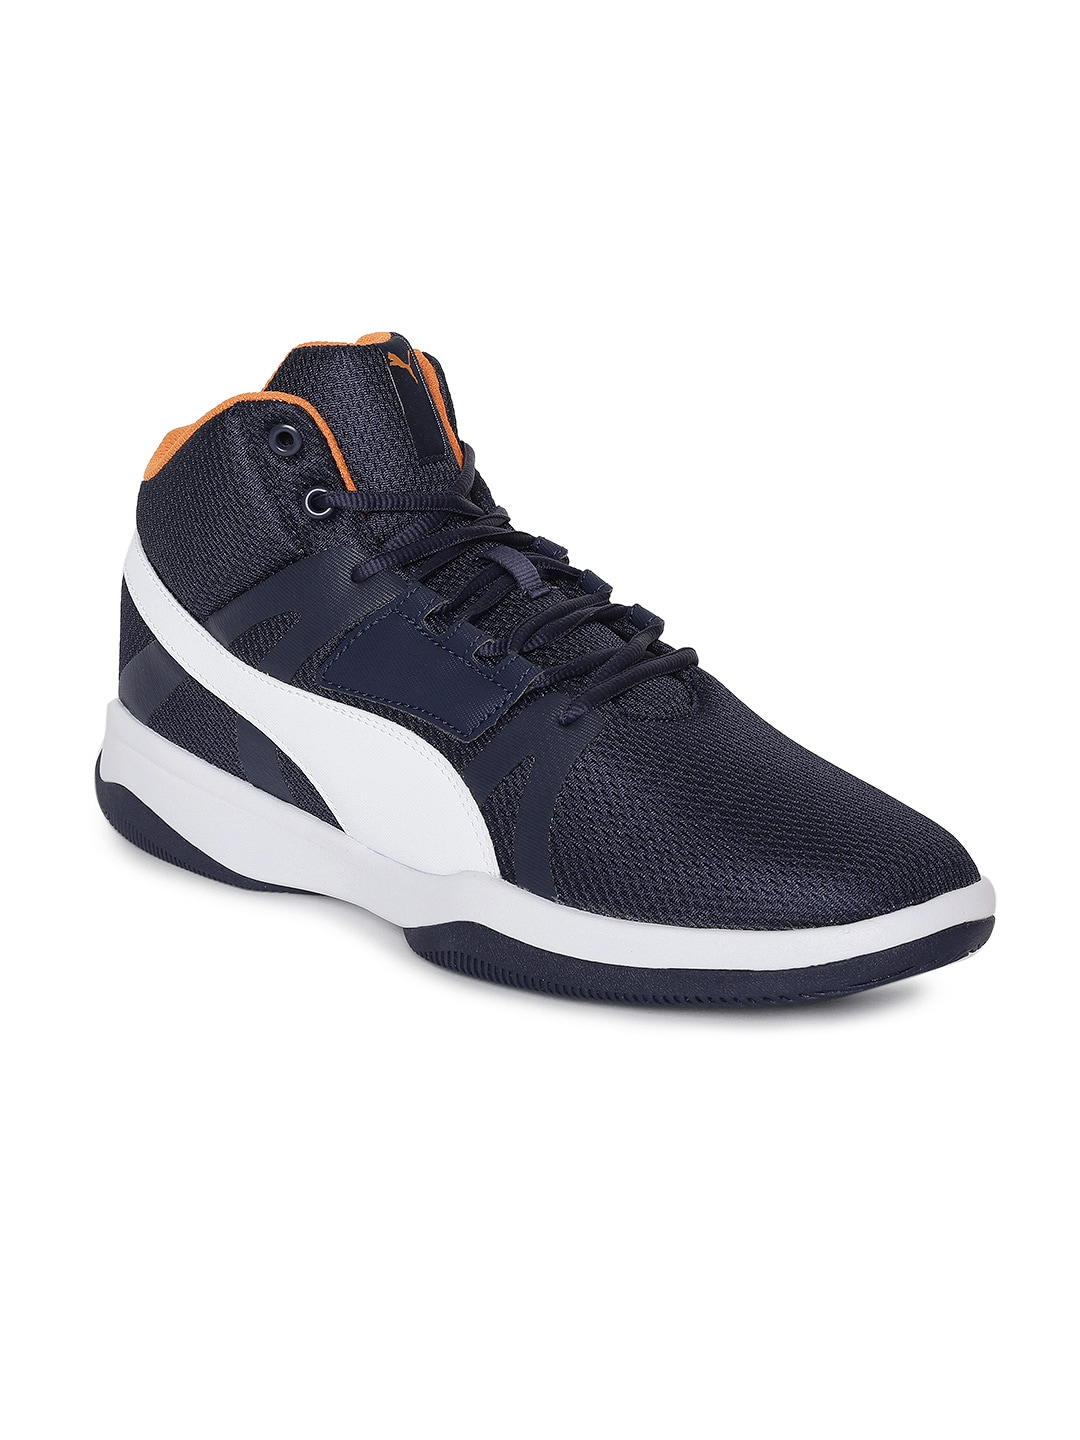 bc9be879096 Puma Poise Perf Idp Sneakers For Men Blue - Buy Puma Poise Perf Idp Sneakers  For Men Blue online in India